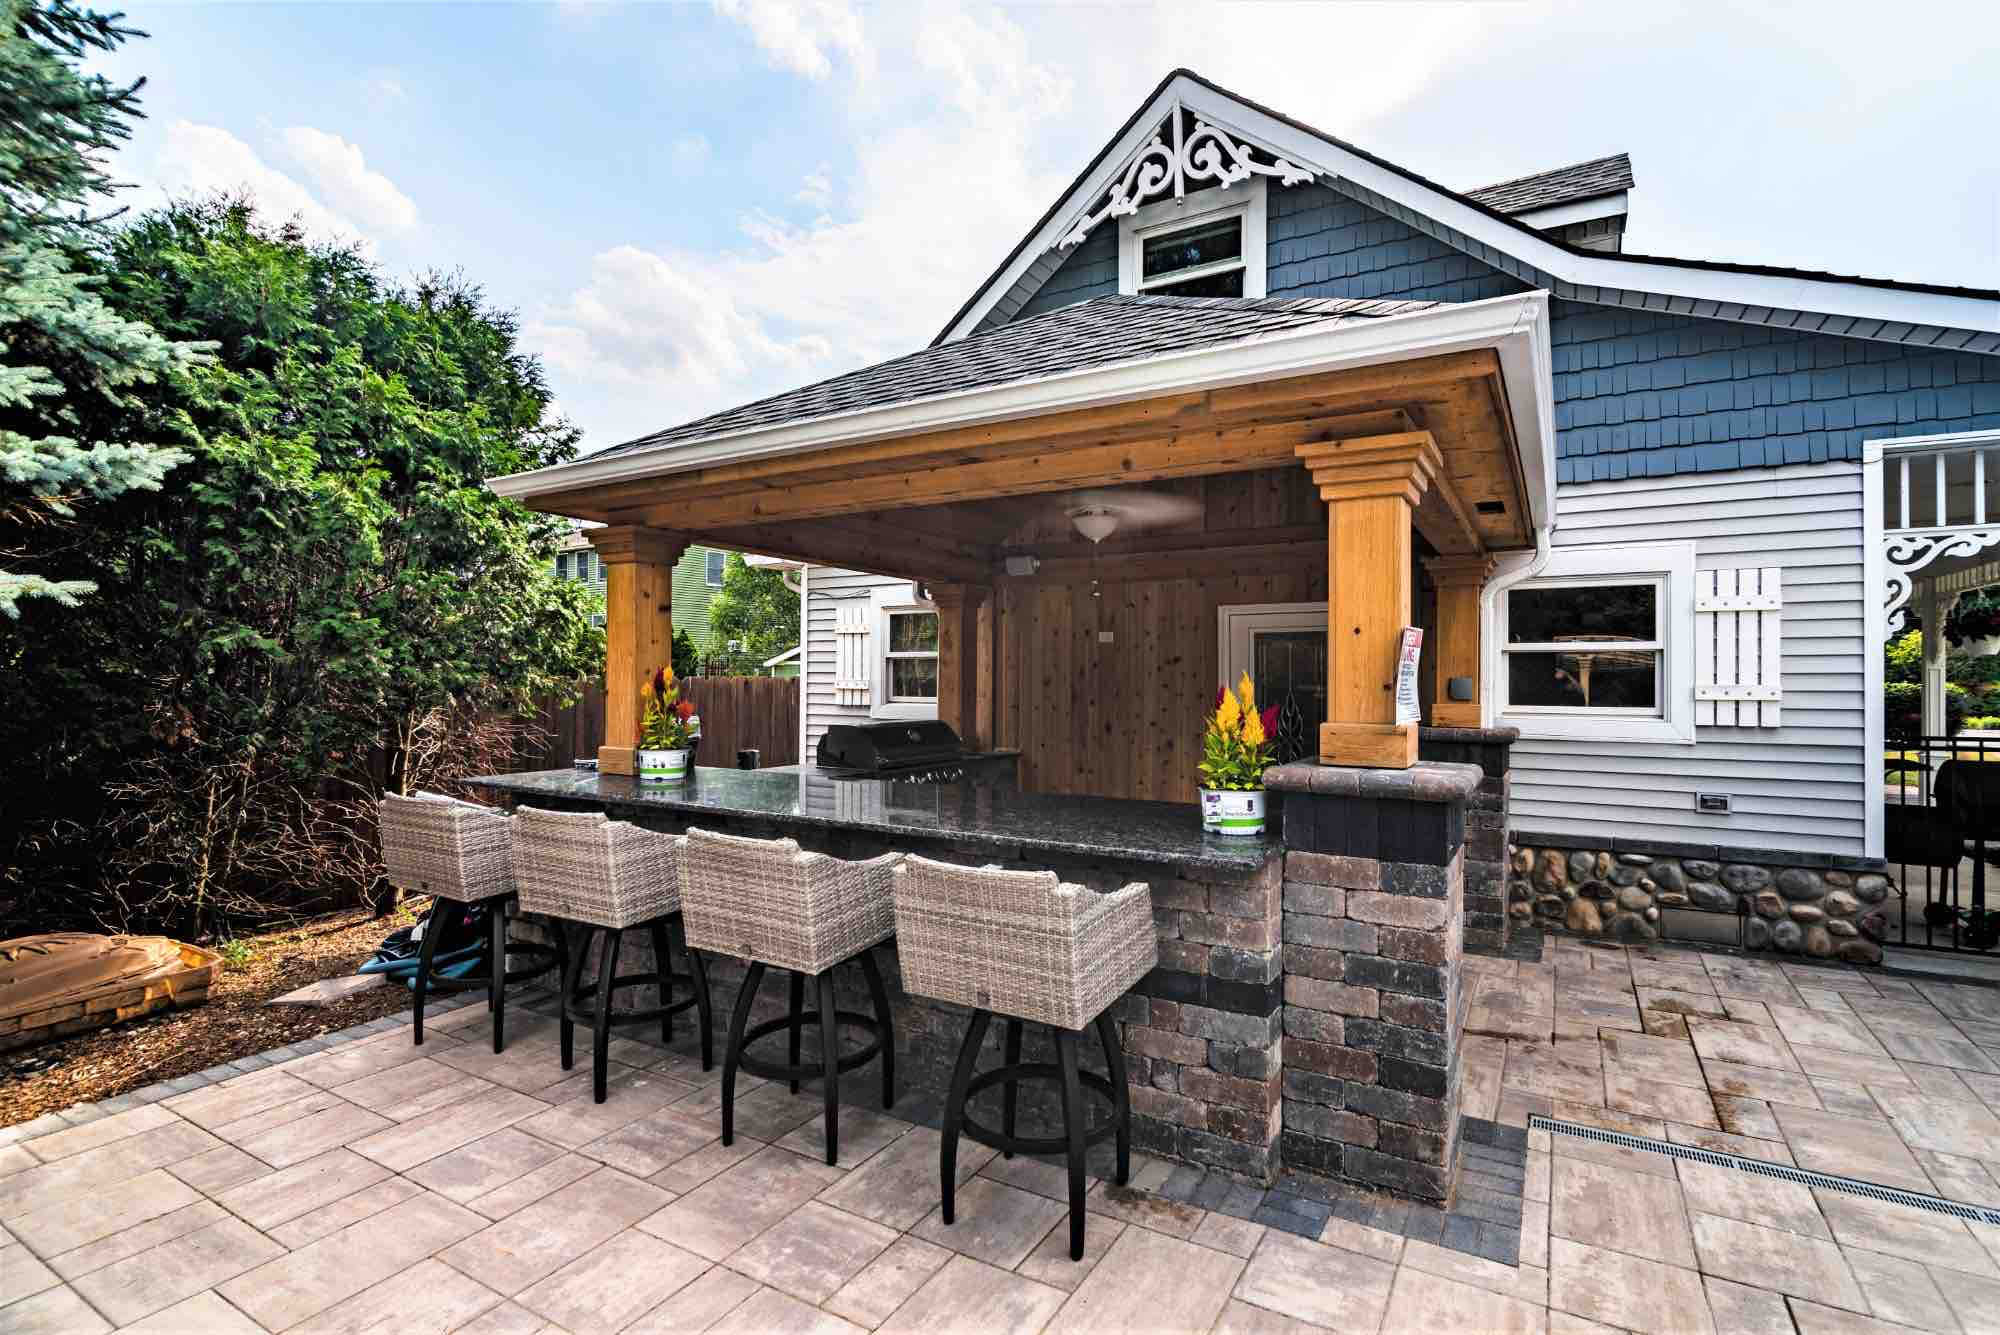 outdoor kitchen and bar seating next to pool